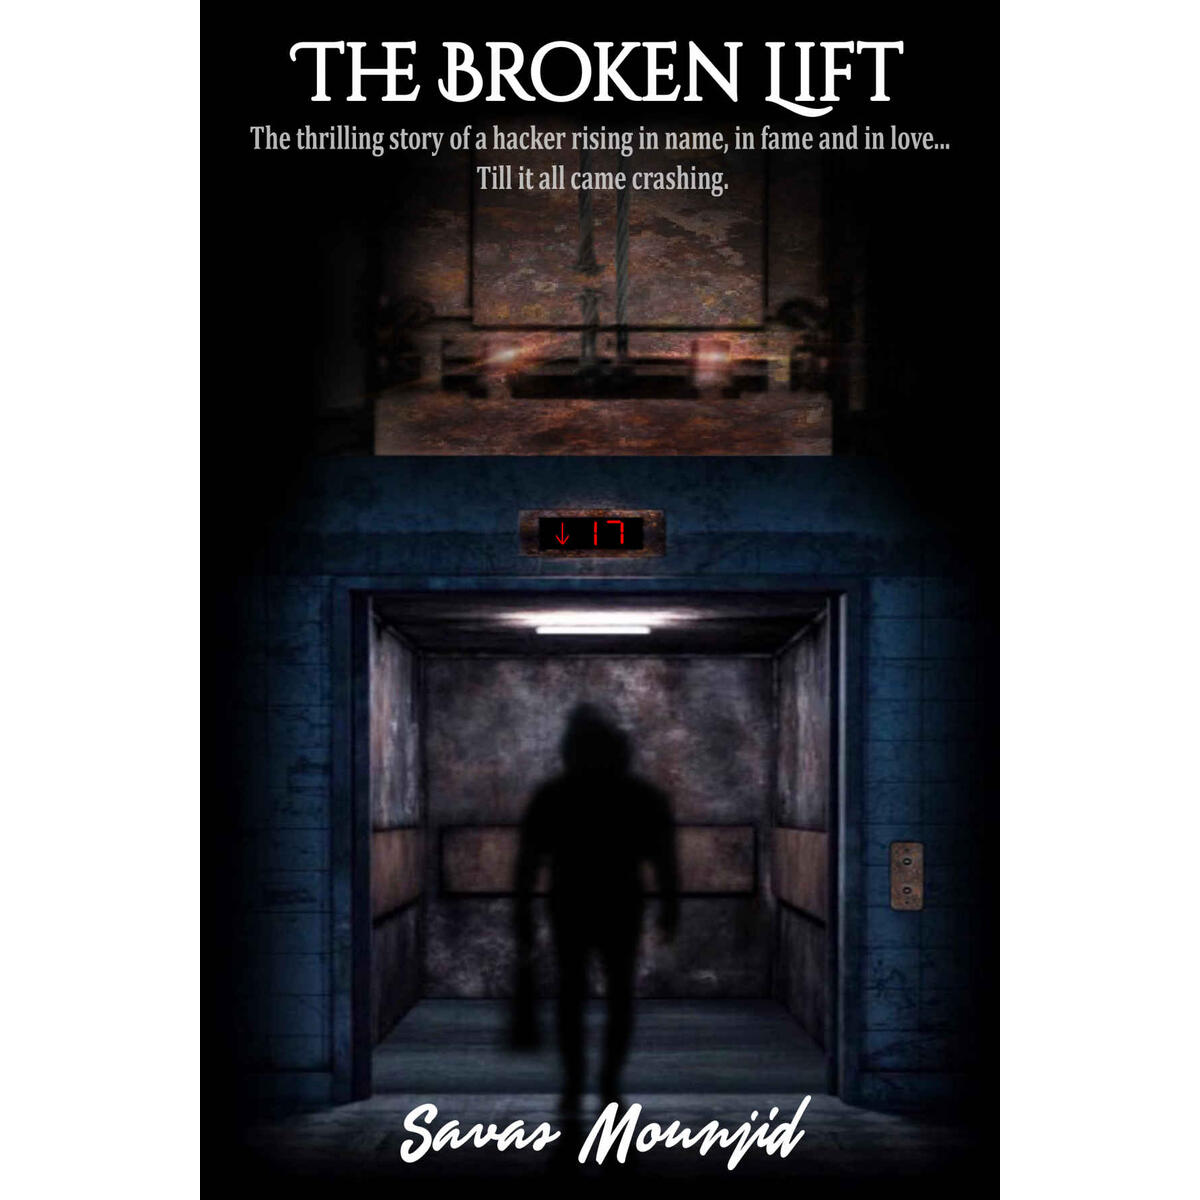 The Broken Lift: The thrilling story of a hacker rising in name, in fame and in love... Till it all came crashing.Deep into the dark rabbit hole of crime and hacking, everything can get taken away from you.   Even when Lucca was young, he n